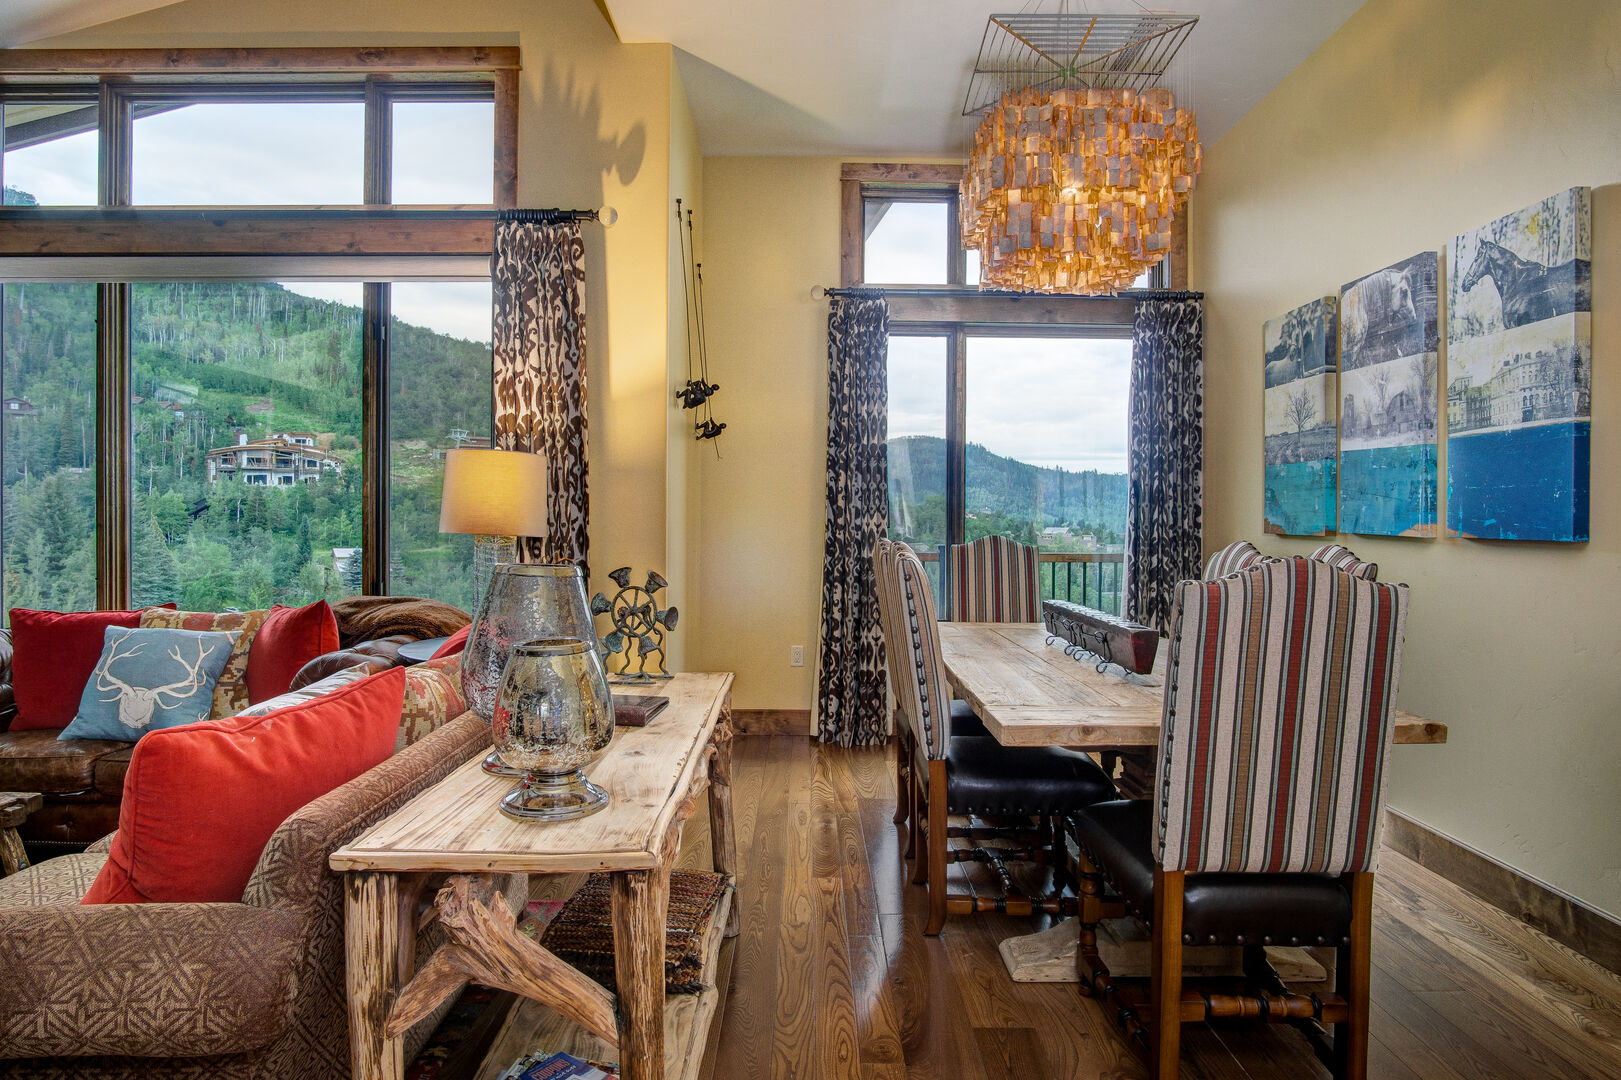 Dining Table, Chairs, Sofa Table, Sofas, and Windows with Mountain View.